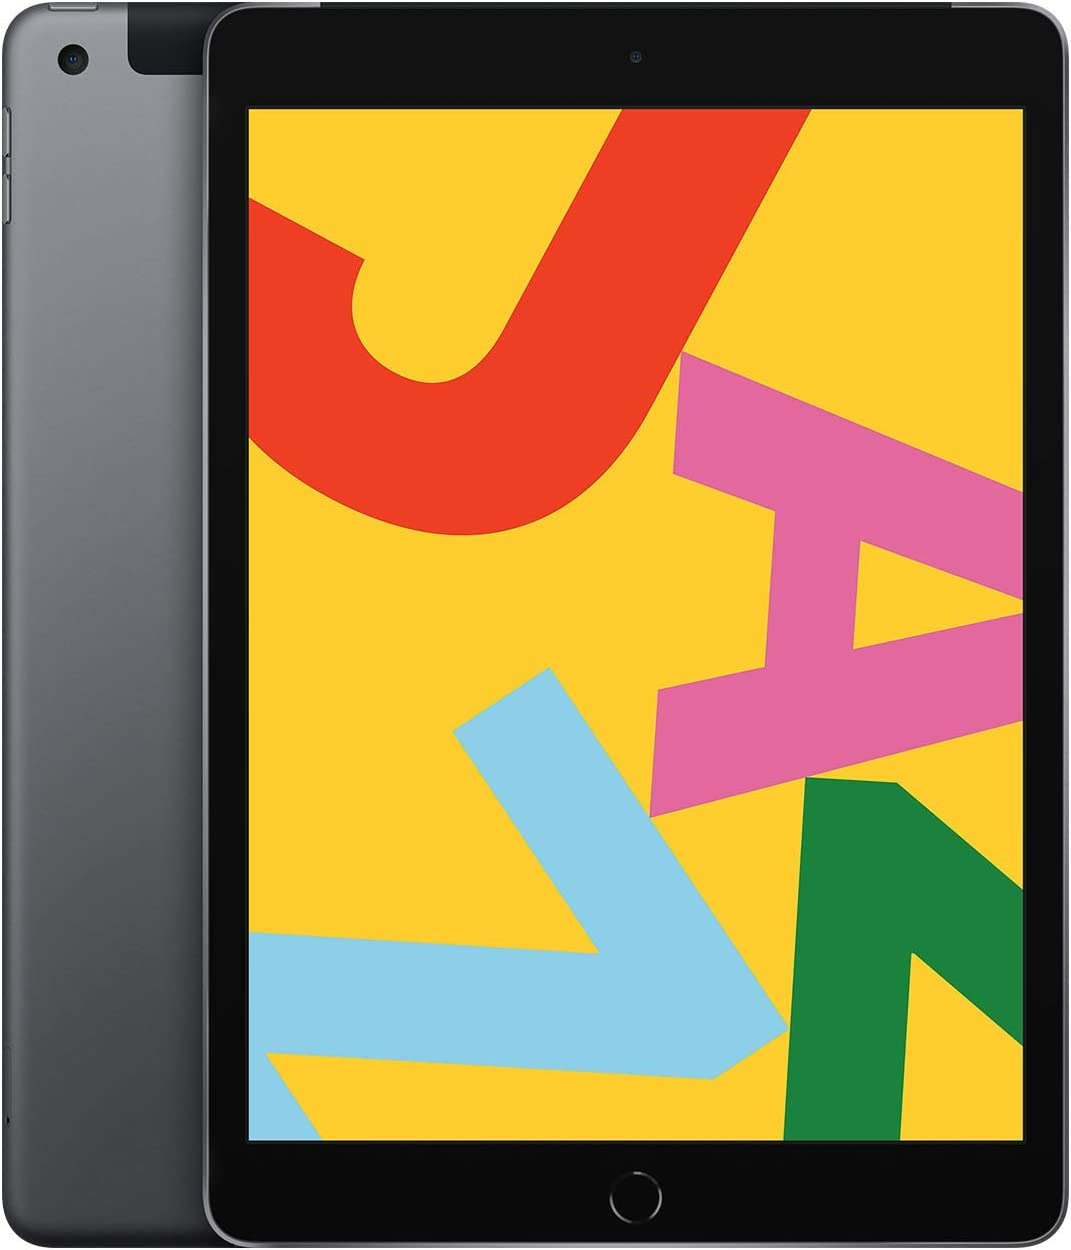 Apple iPad (10.2-inch, Wi-Fi + Cellular, 128GB) - Space Gray (Previous Model)?